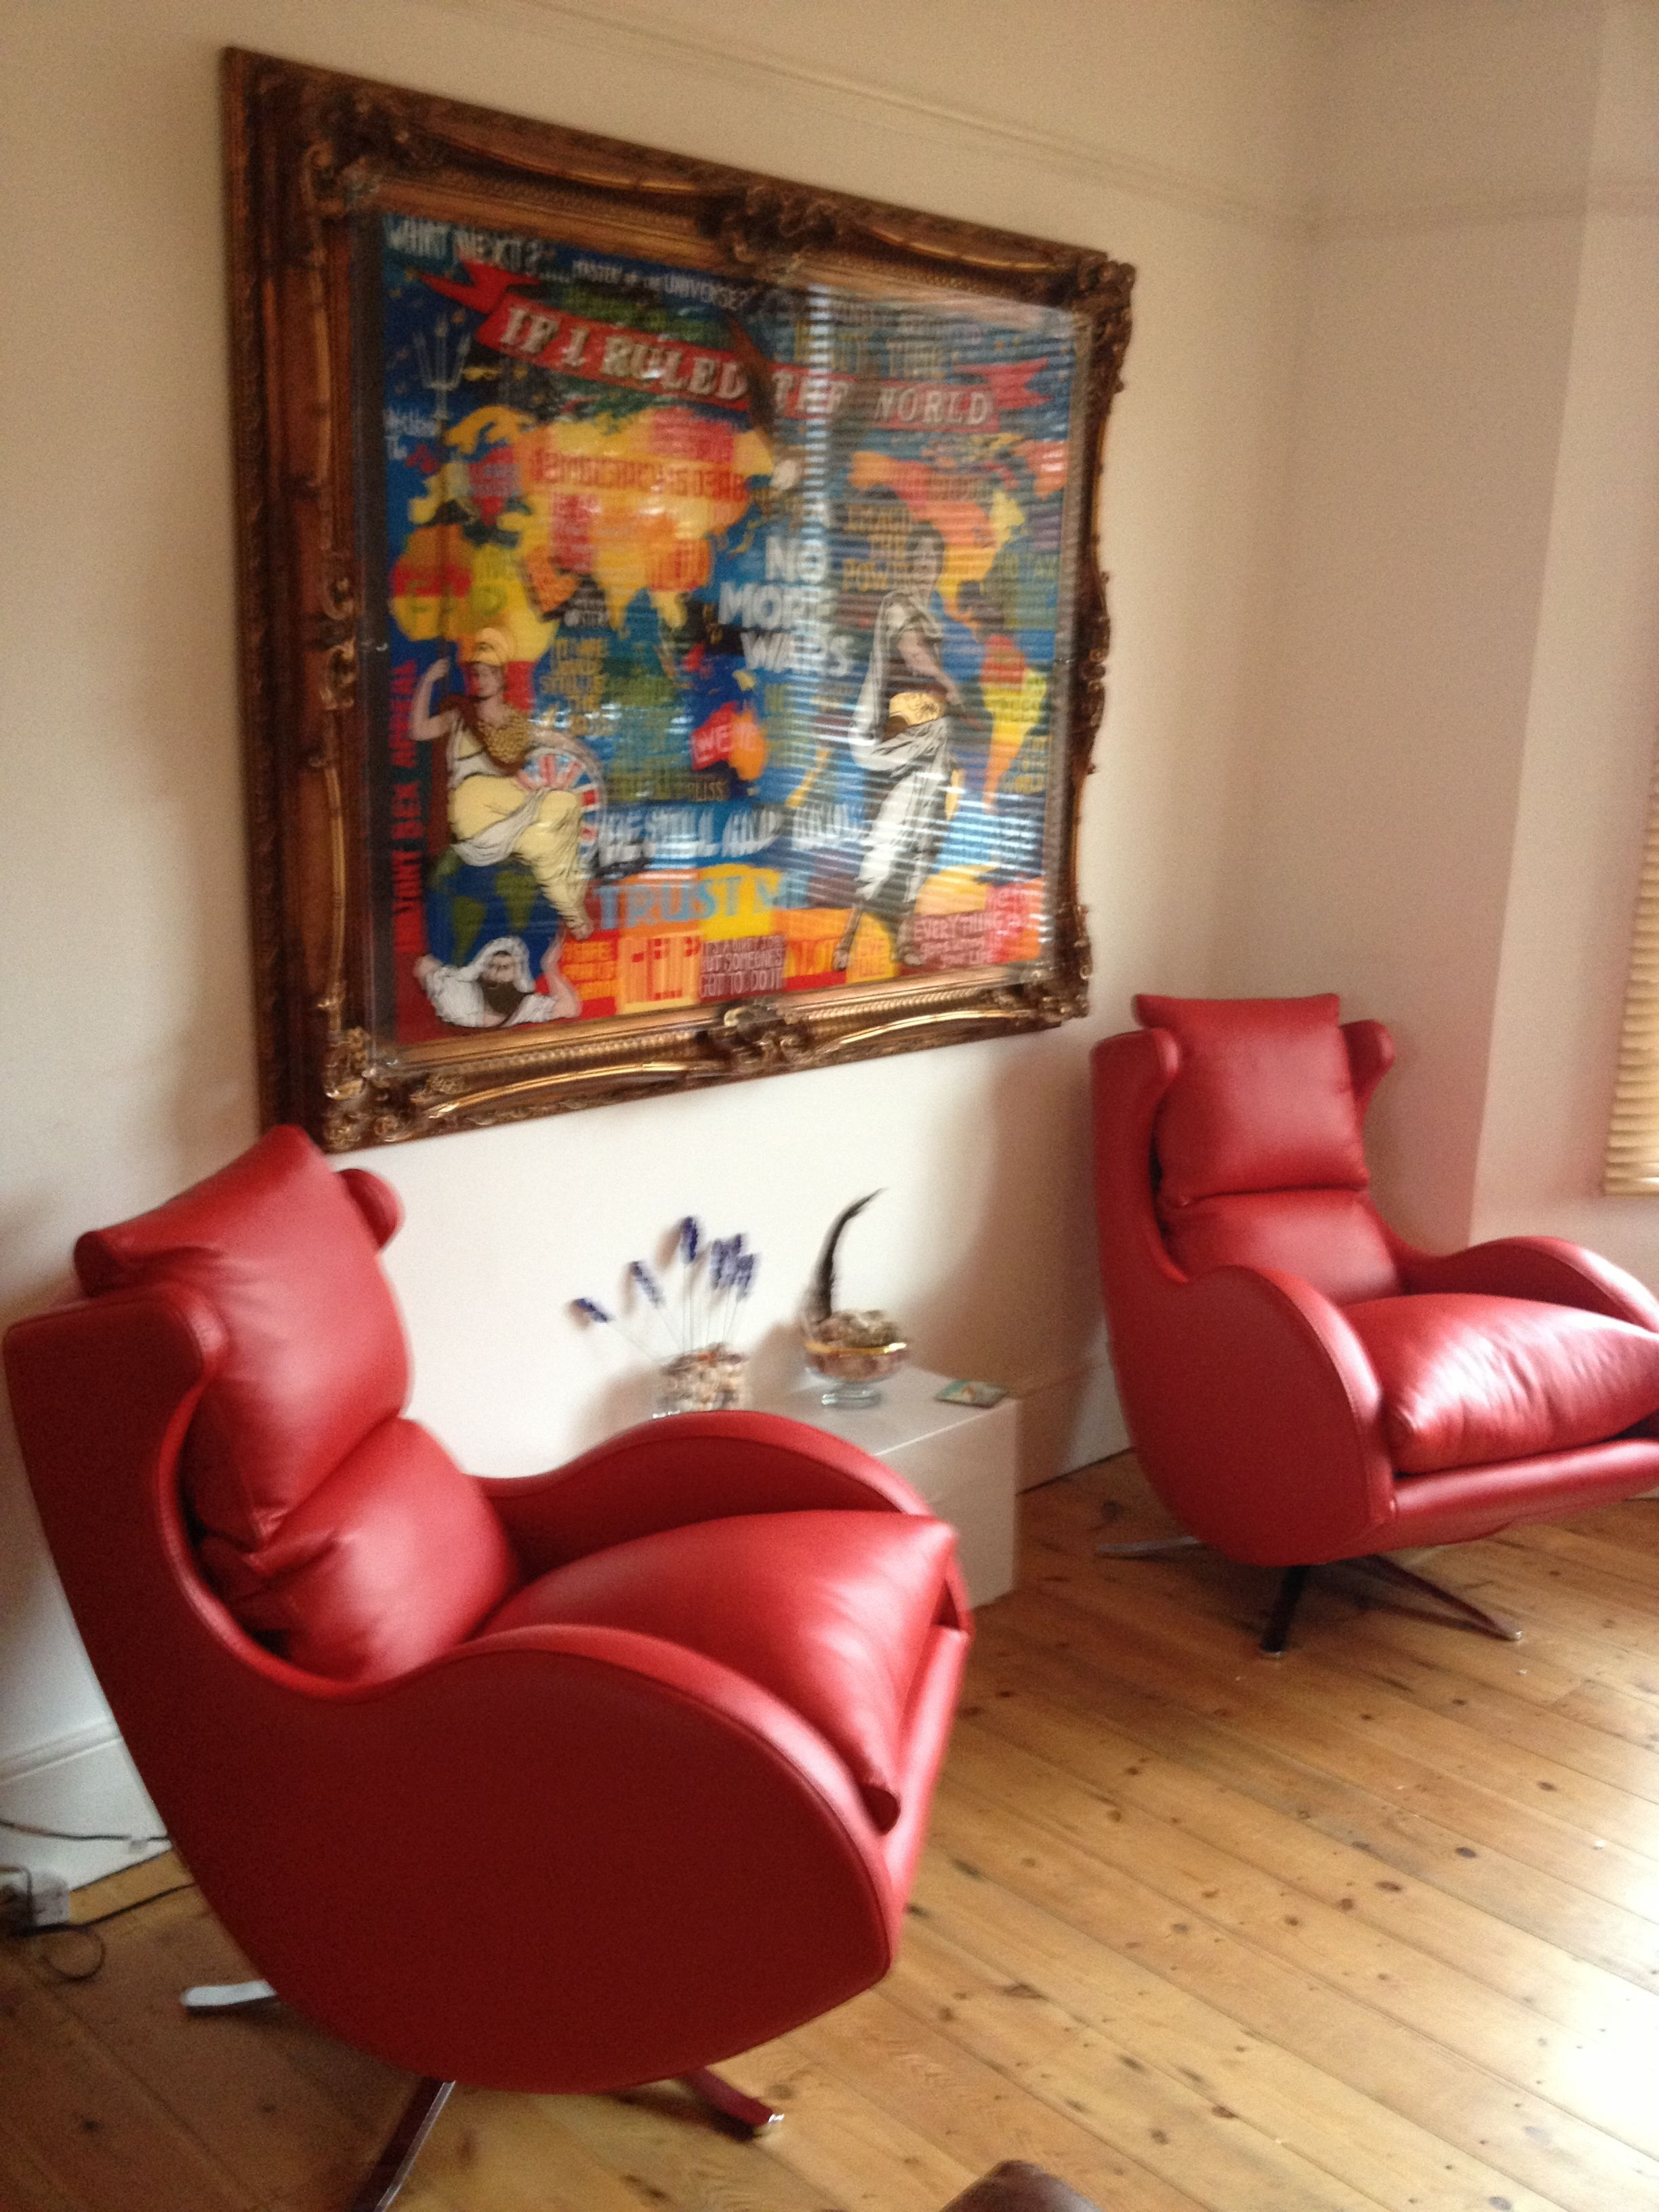 Swivel Chair In Spanish Cheap Covers Brisbane Contemporary Designer Chairs These Two Look Amazing Red Leather